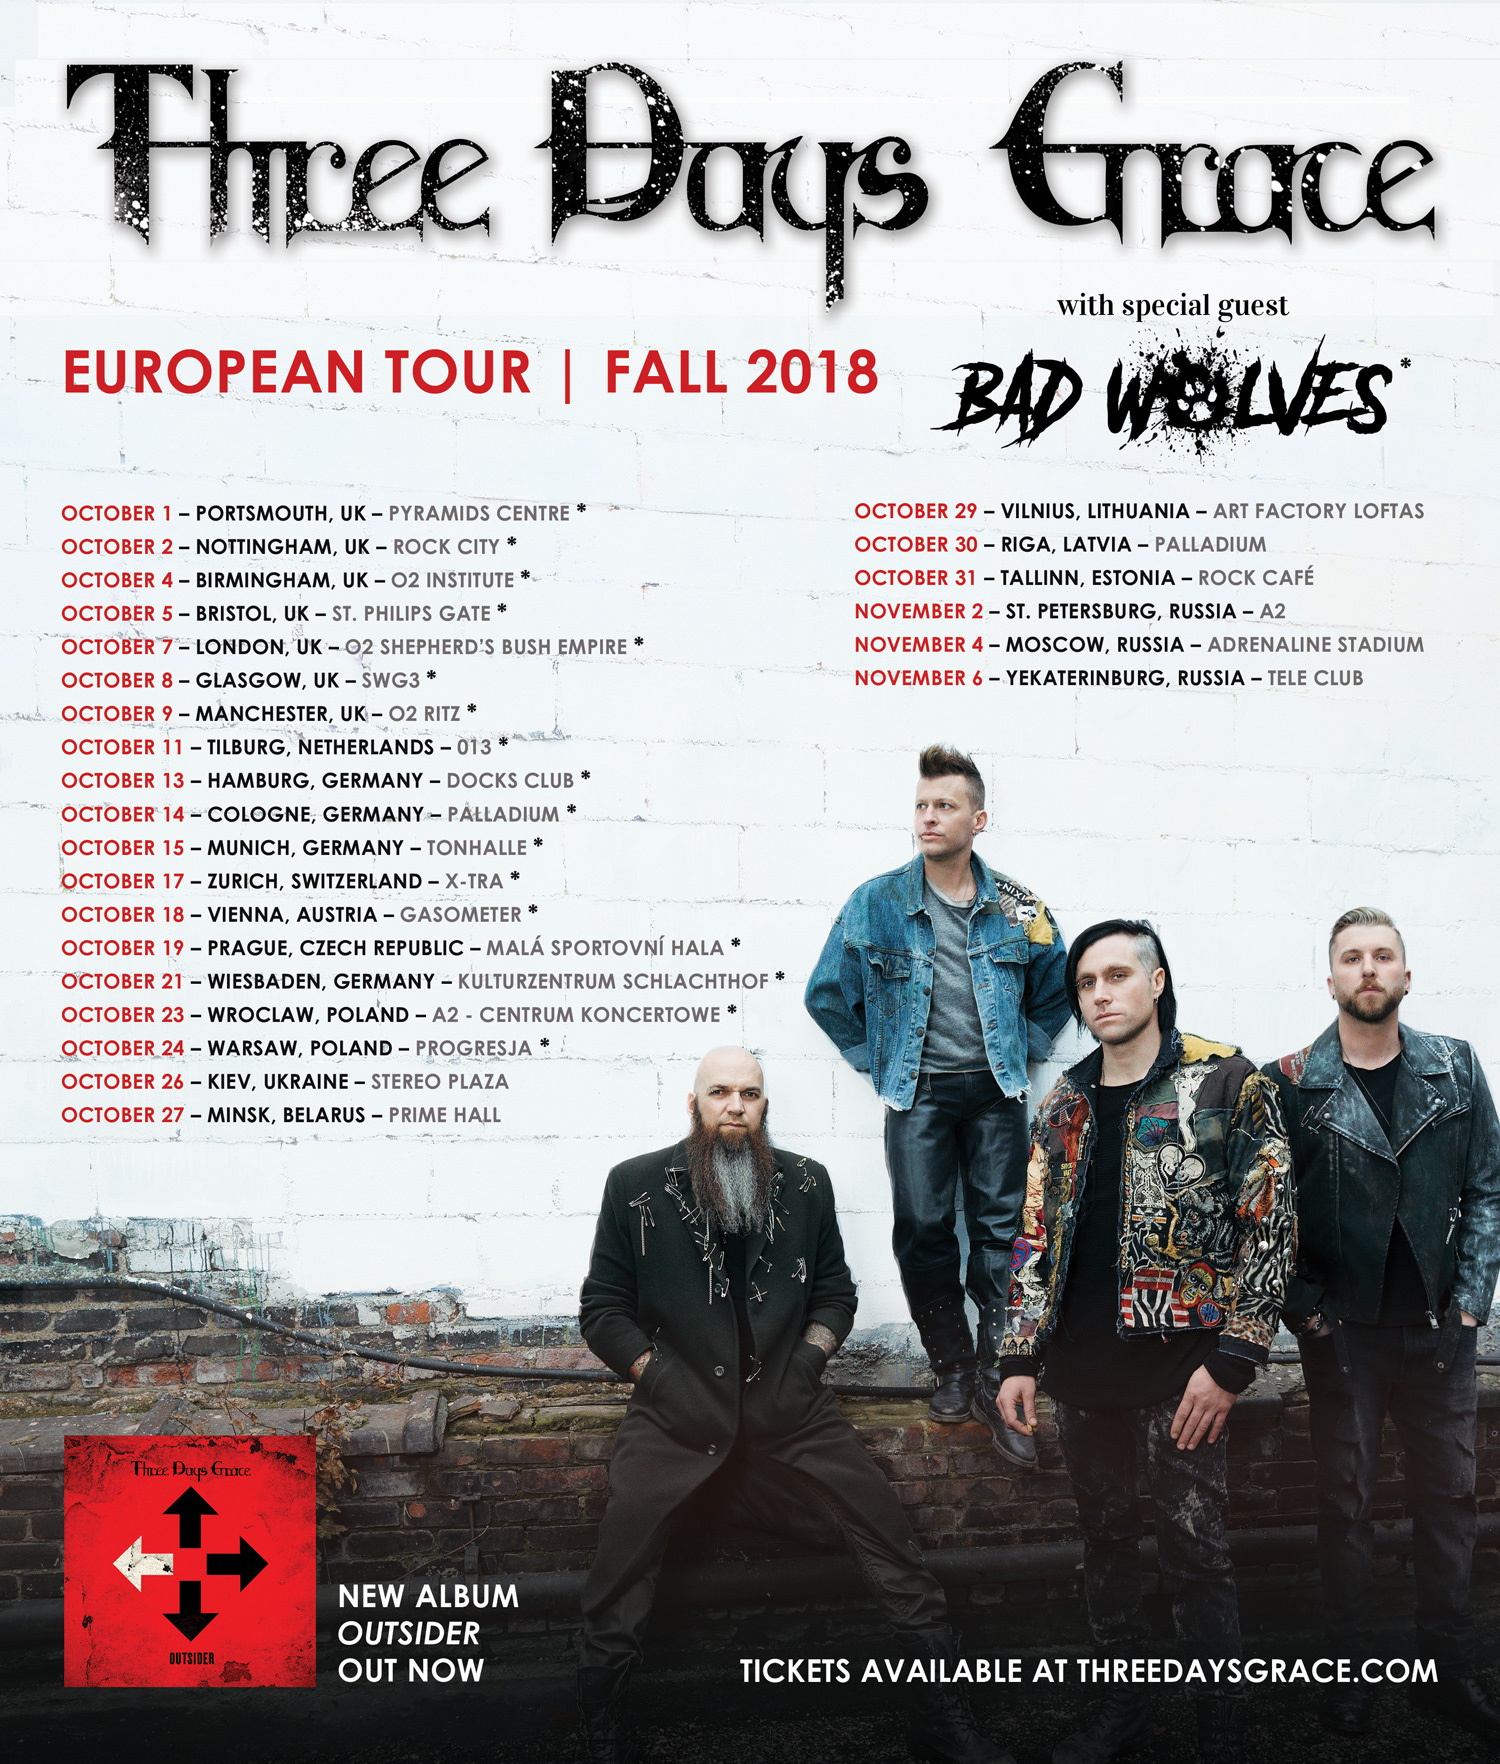 https://threedaysgrace.com/2018/05/07/3dg-fall-2018-european-tour-announced/